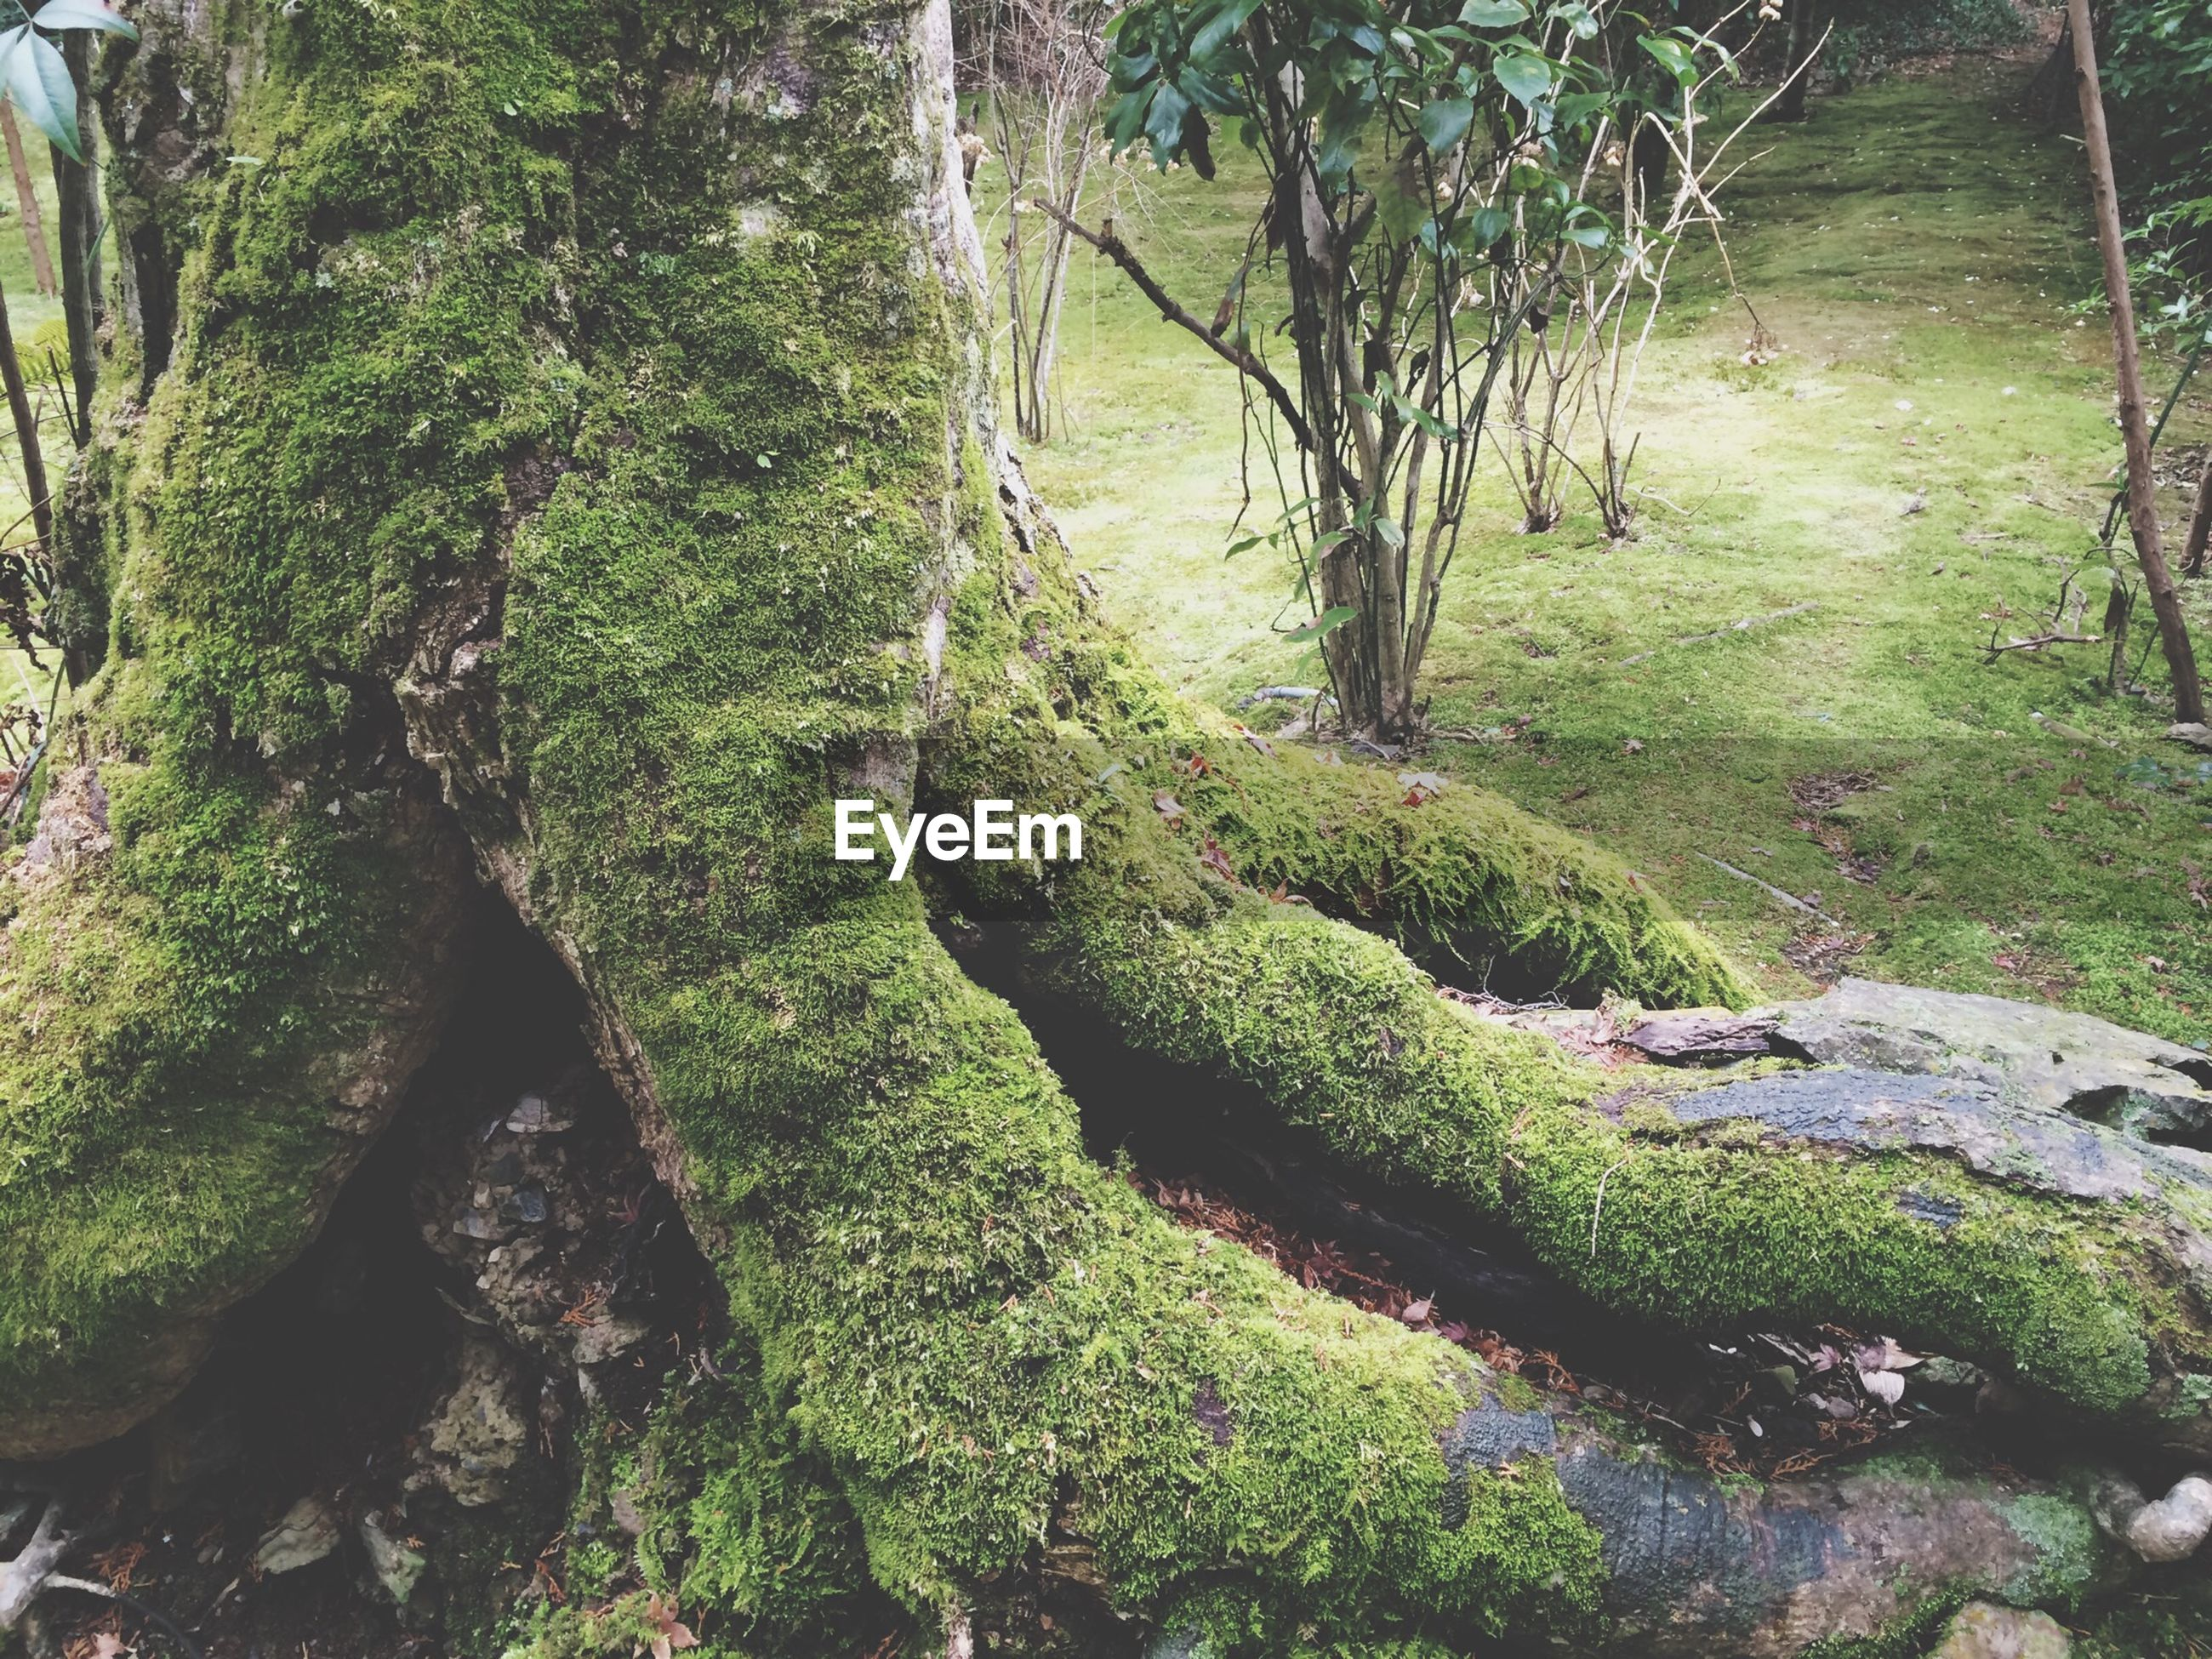 tree, green color, moss, growth, forest, nature, tranquility, tree trunk, plant, beauty in nature, rock - object, tranquil scene, outdoors, day, scenics, sunlight, no people, textured, high angle view, green